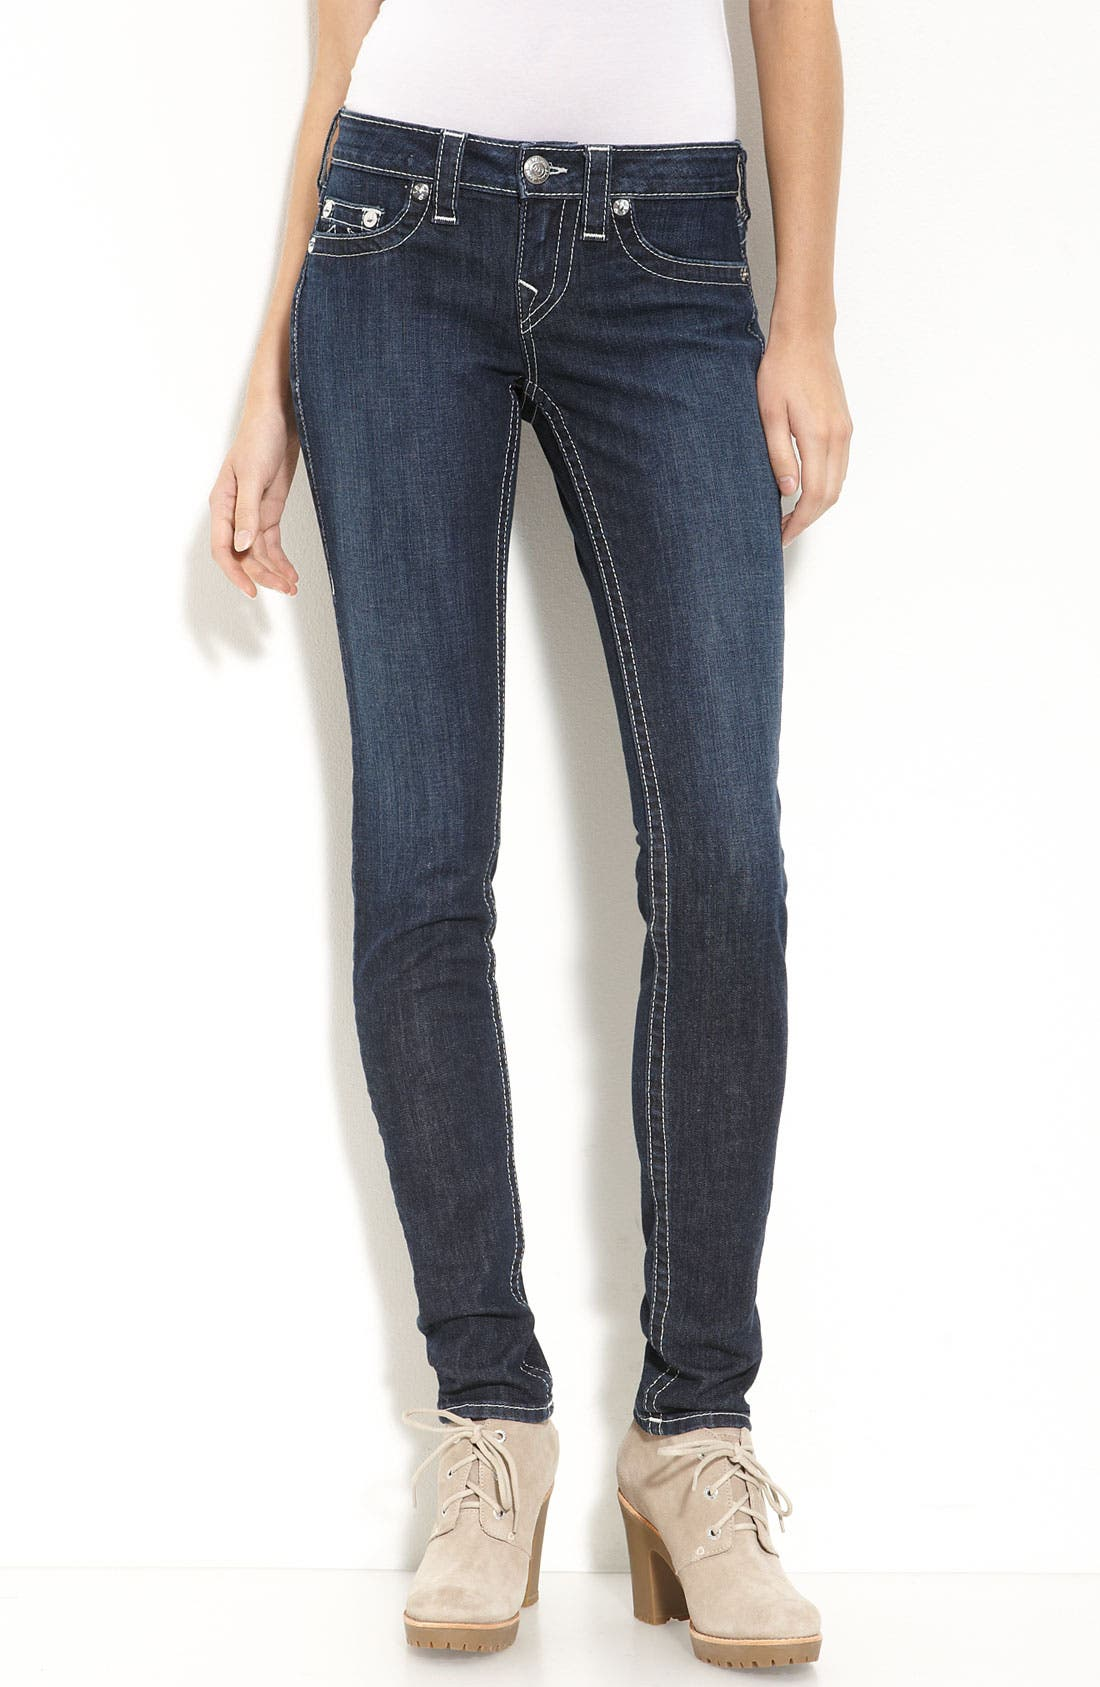 Alternate Image 1 Selected - True Religion Brand Jeans Skinny Jeans (Lonestar Wash)